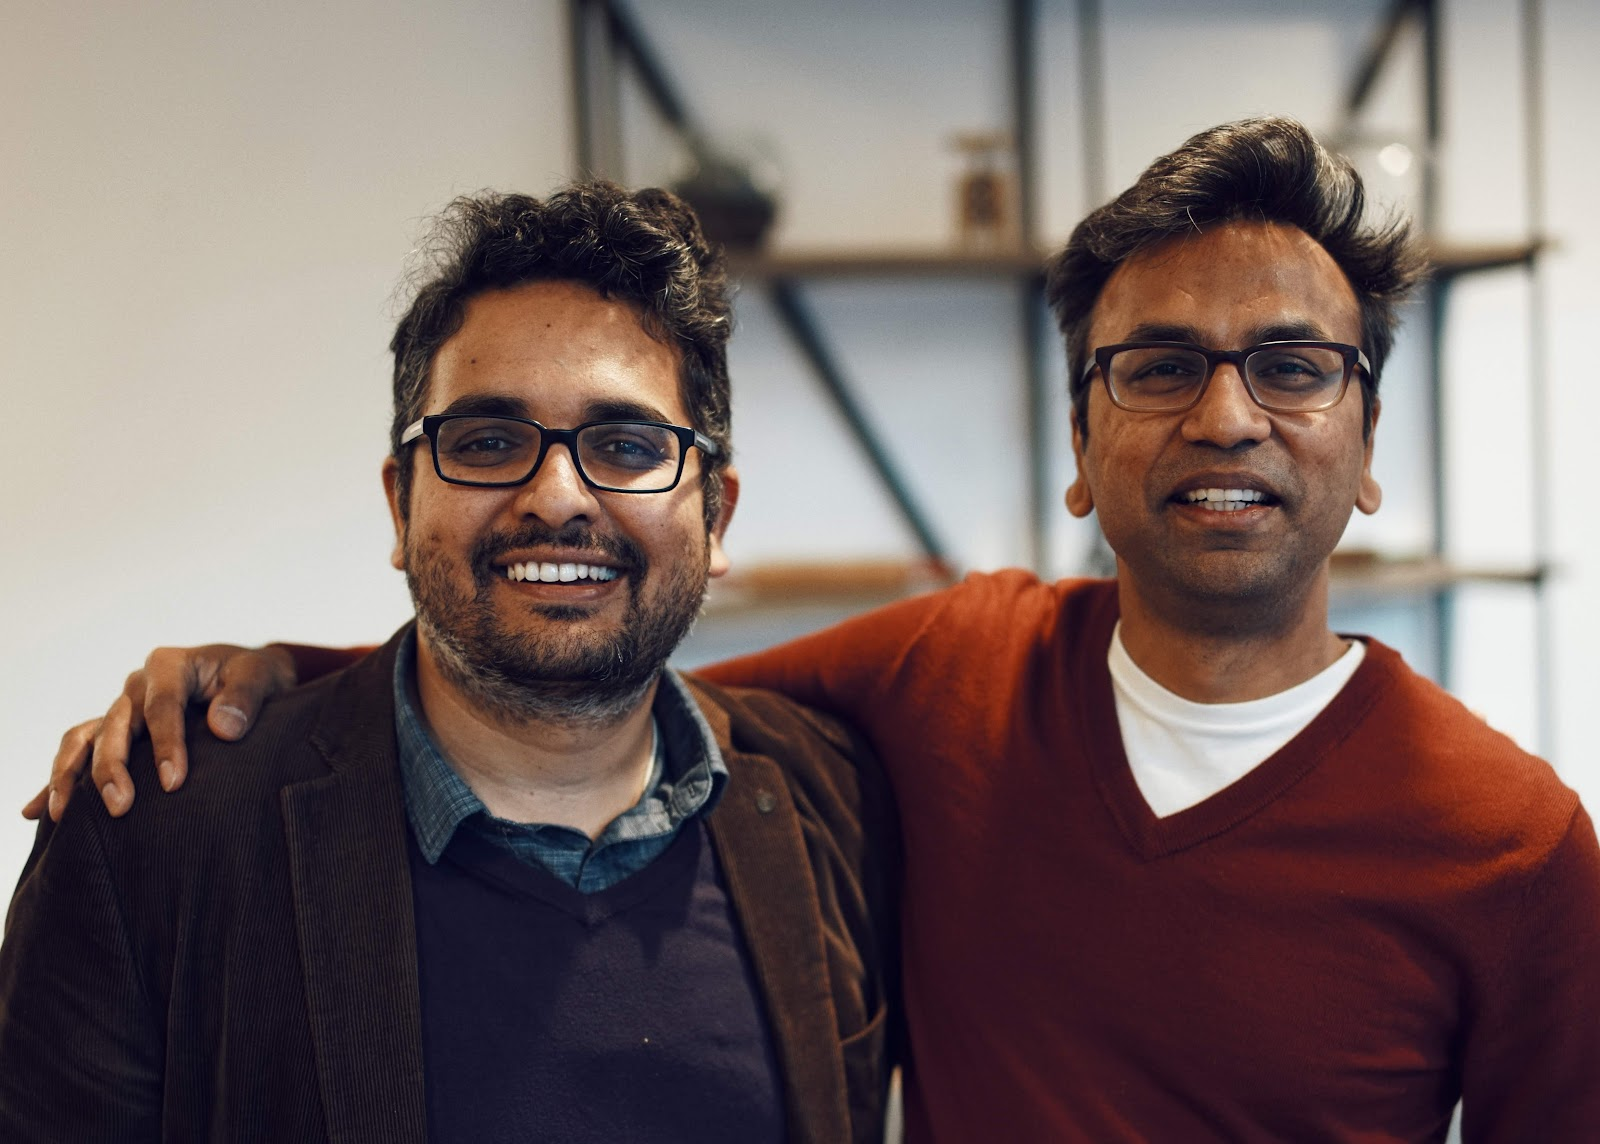 Fiddler Lab founders Amit Paka and Krishna Gade